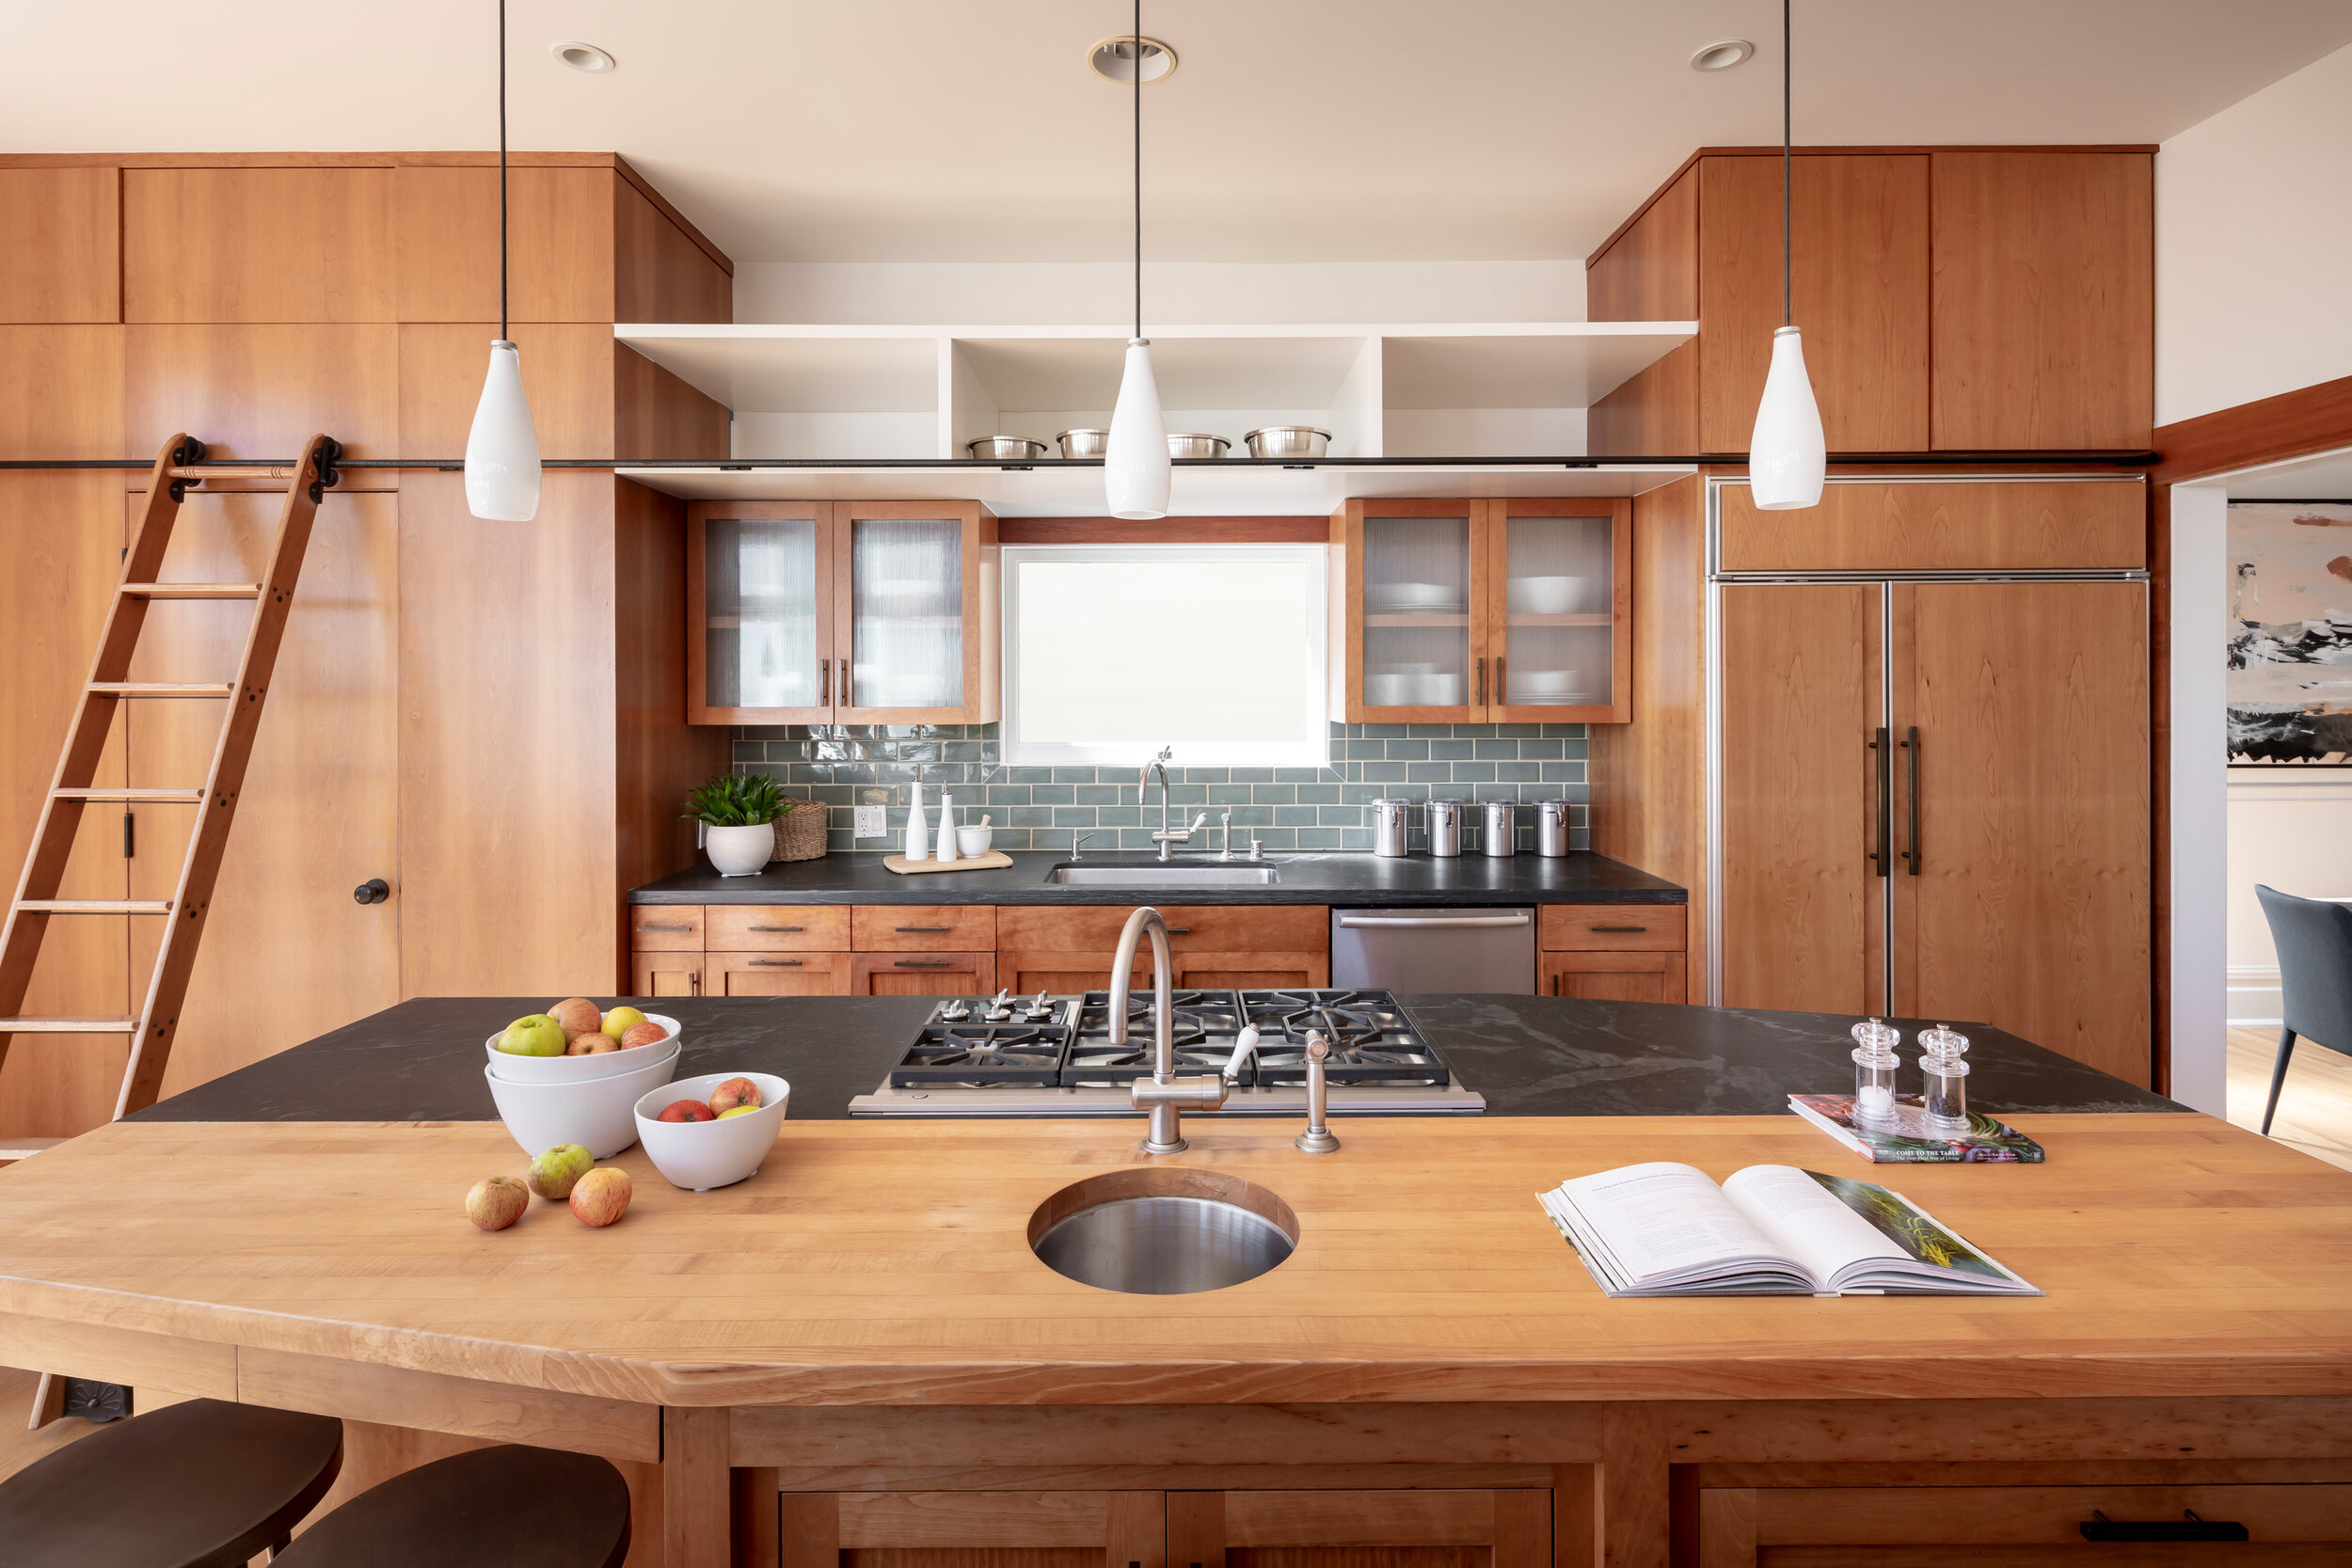 L1_Kitchen_0198.jpg